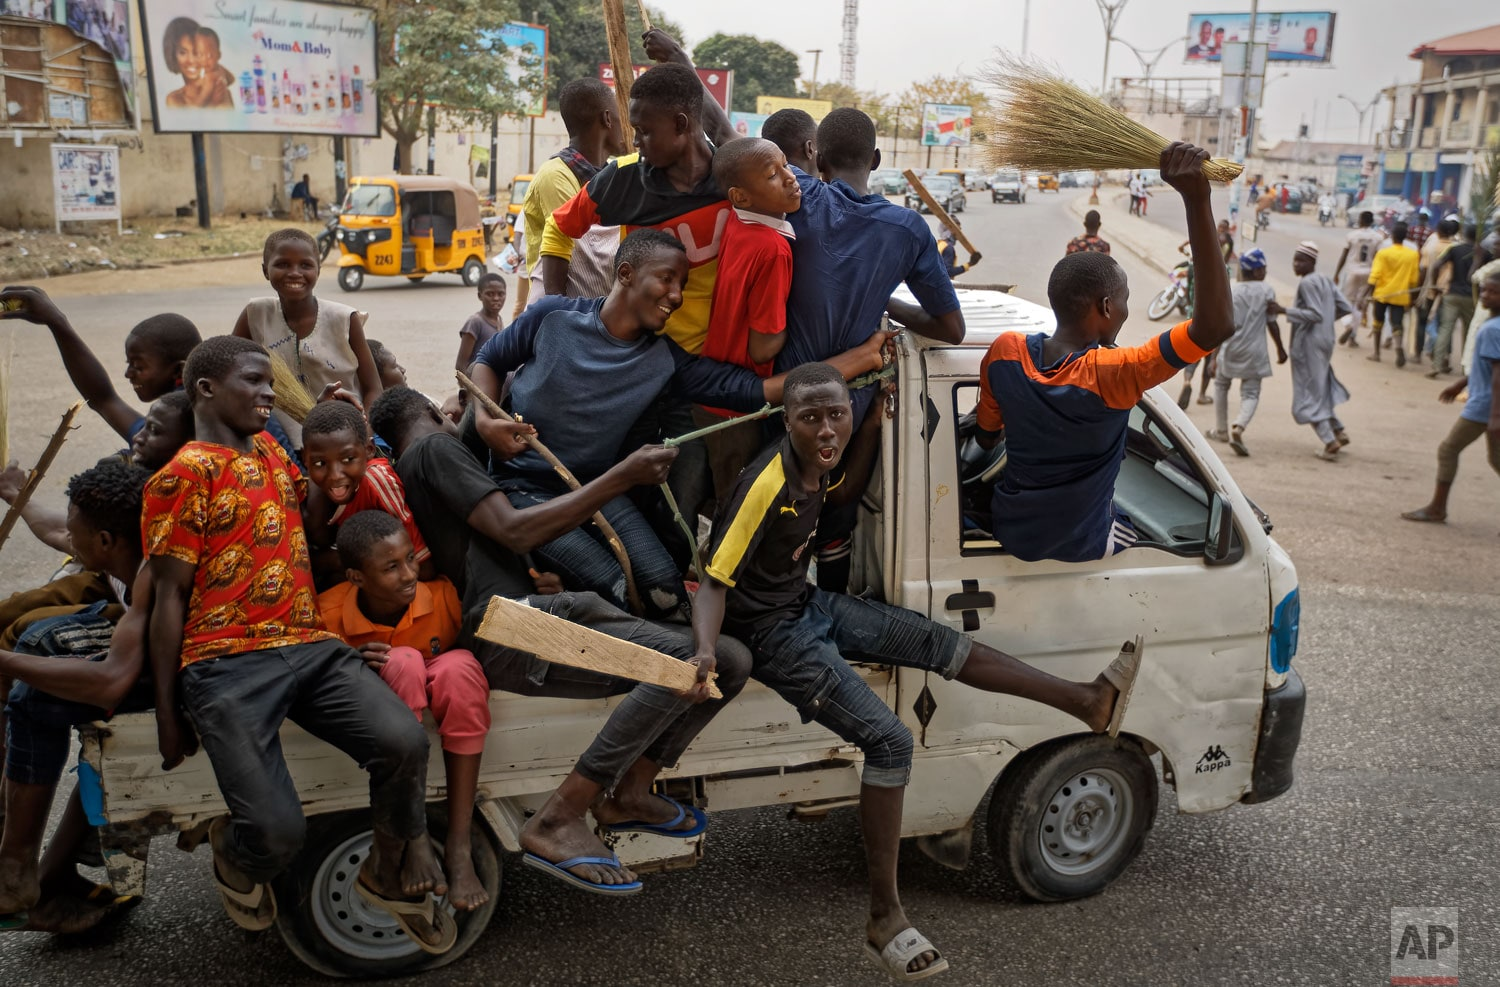 Supporters of Nigeria's President Muhammadu Buhari, some carrying crude weapons, ride on the back of a truck as they follow a march of others to celebrate his electoral win, on a street in Kano, northern Nigeria Wednesday, February 27, 2019. Buhari defended his sweeping win of a second term as free and fair and appealed to a